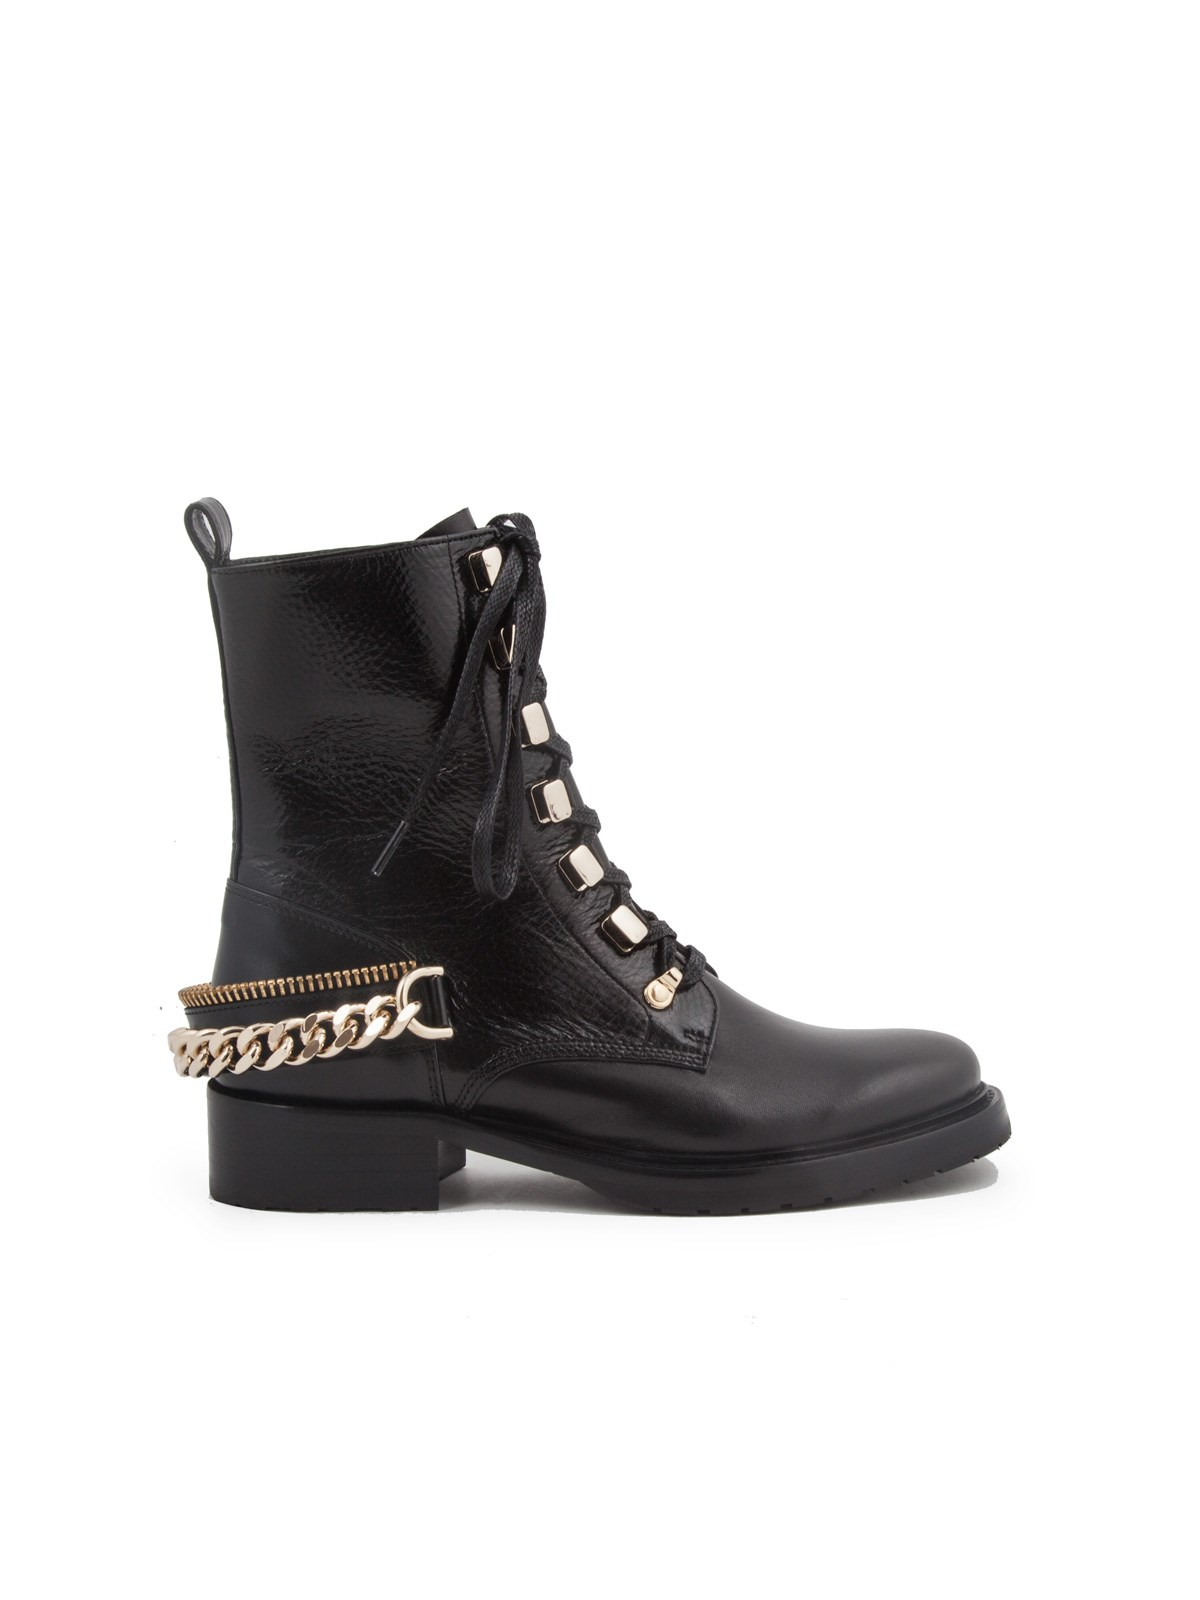 5b8272e4bdd lanvin CHAIN-EMBELLISHED COMBAT BOOTS available on montiboutique.com ...